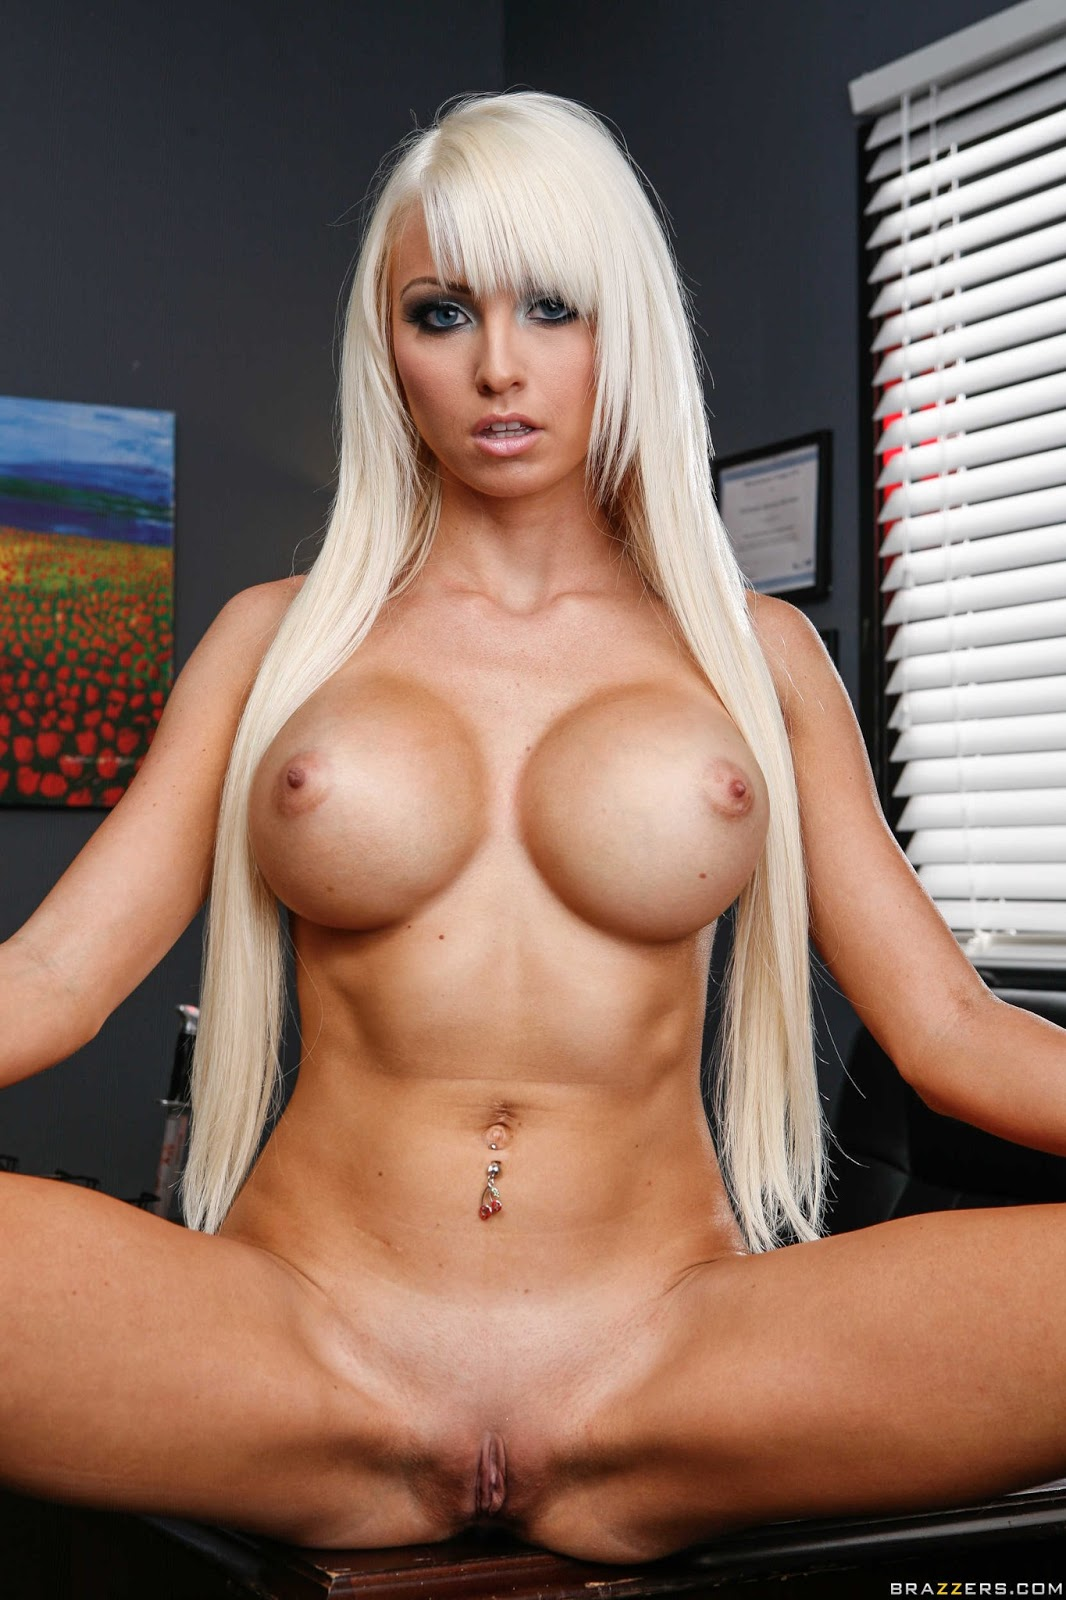 image Rikki six is a blonde babe with huge fake tits she has come